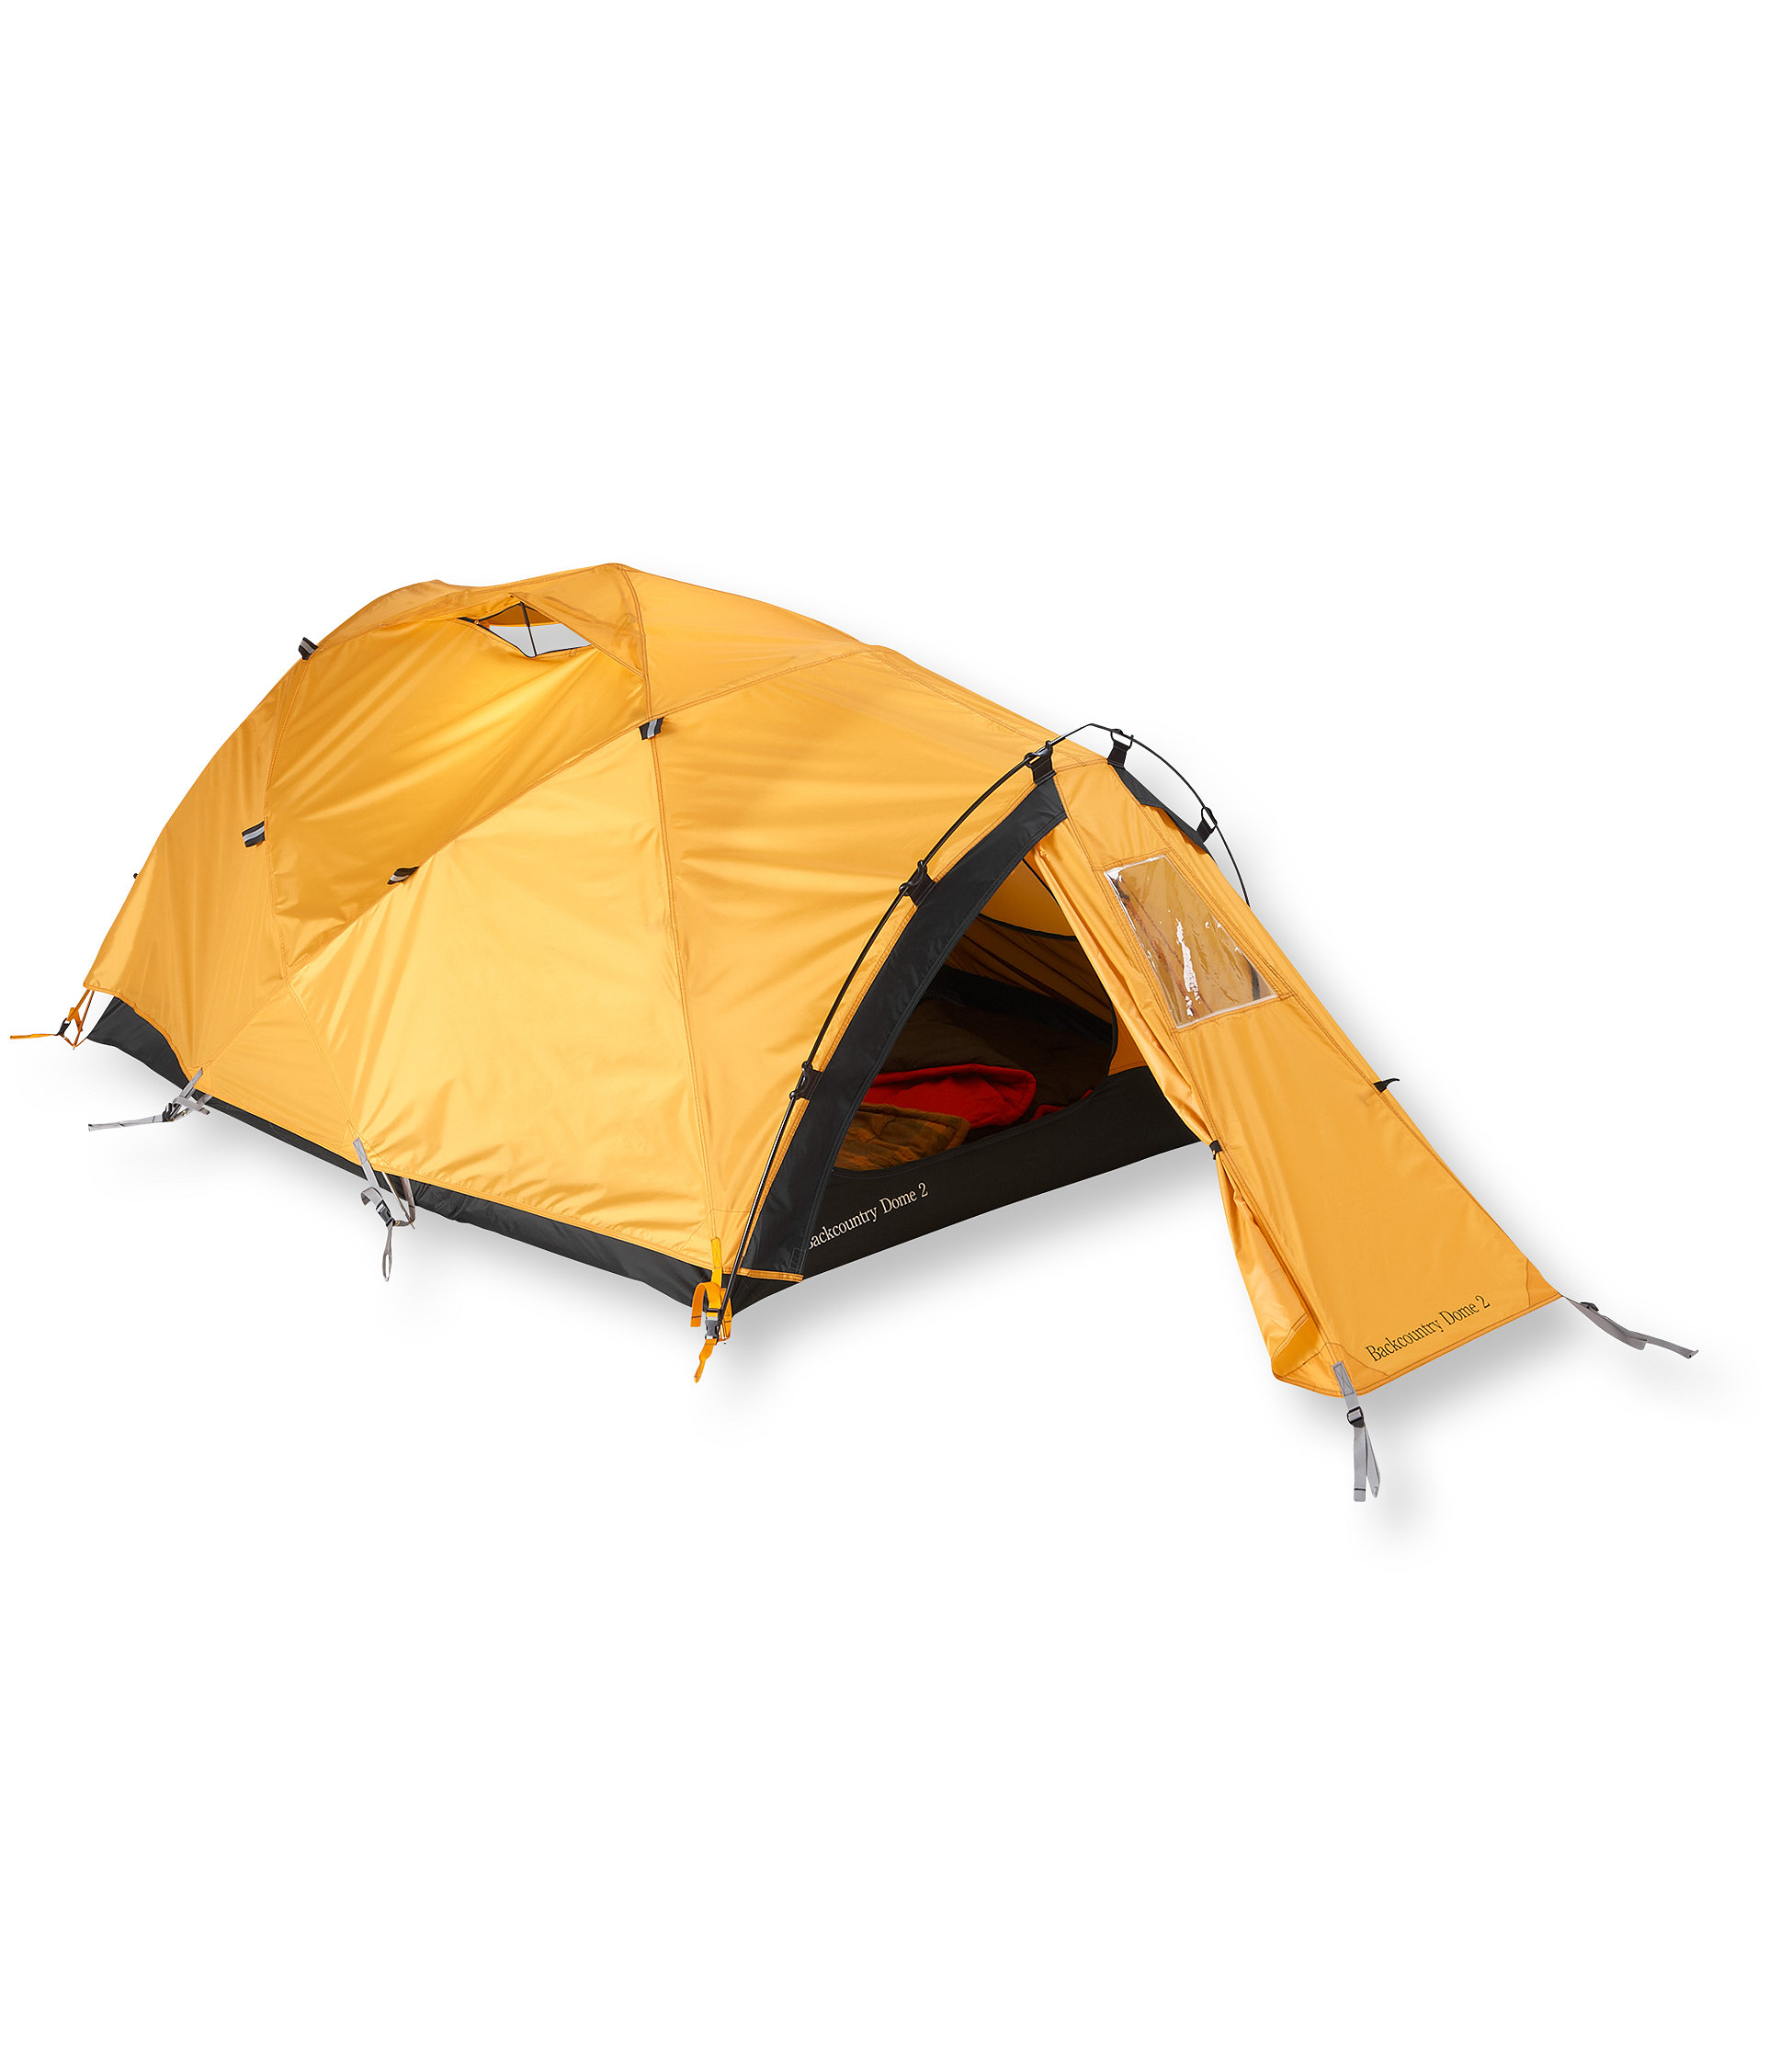 L.L.Bean Backcountry 2-Person Dome